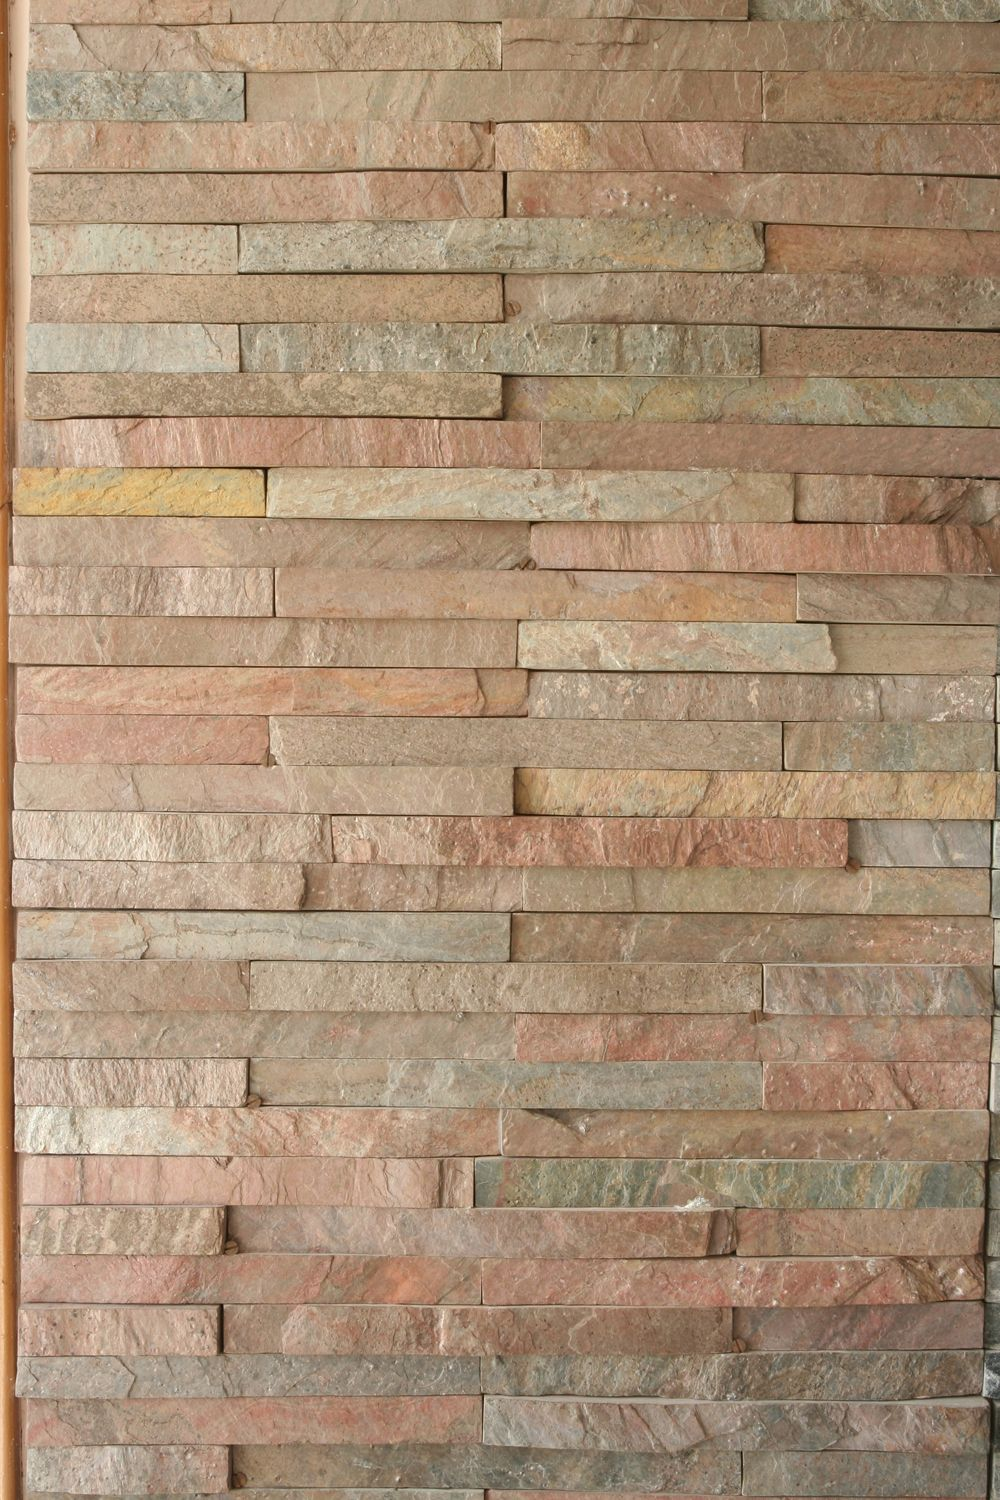 Stone marble granite exterior wall cladding view cladding wall - Copper Quartzite Wall Cladding Stone Designs By Satyam Exports